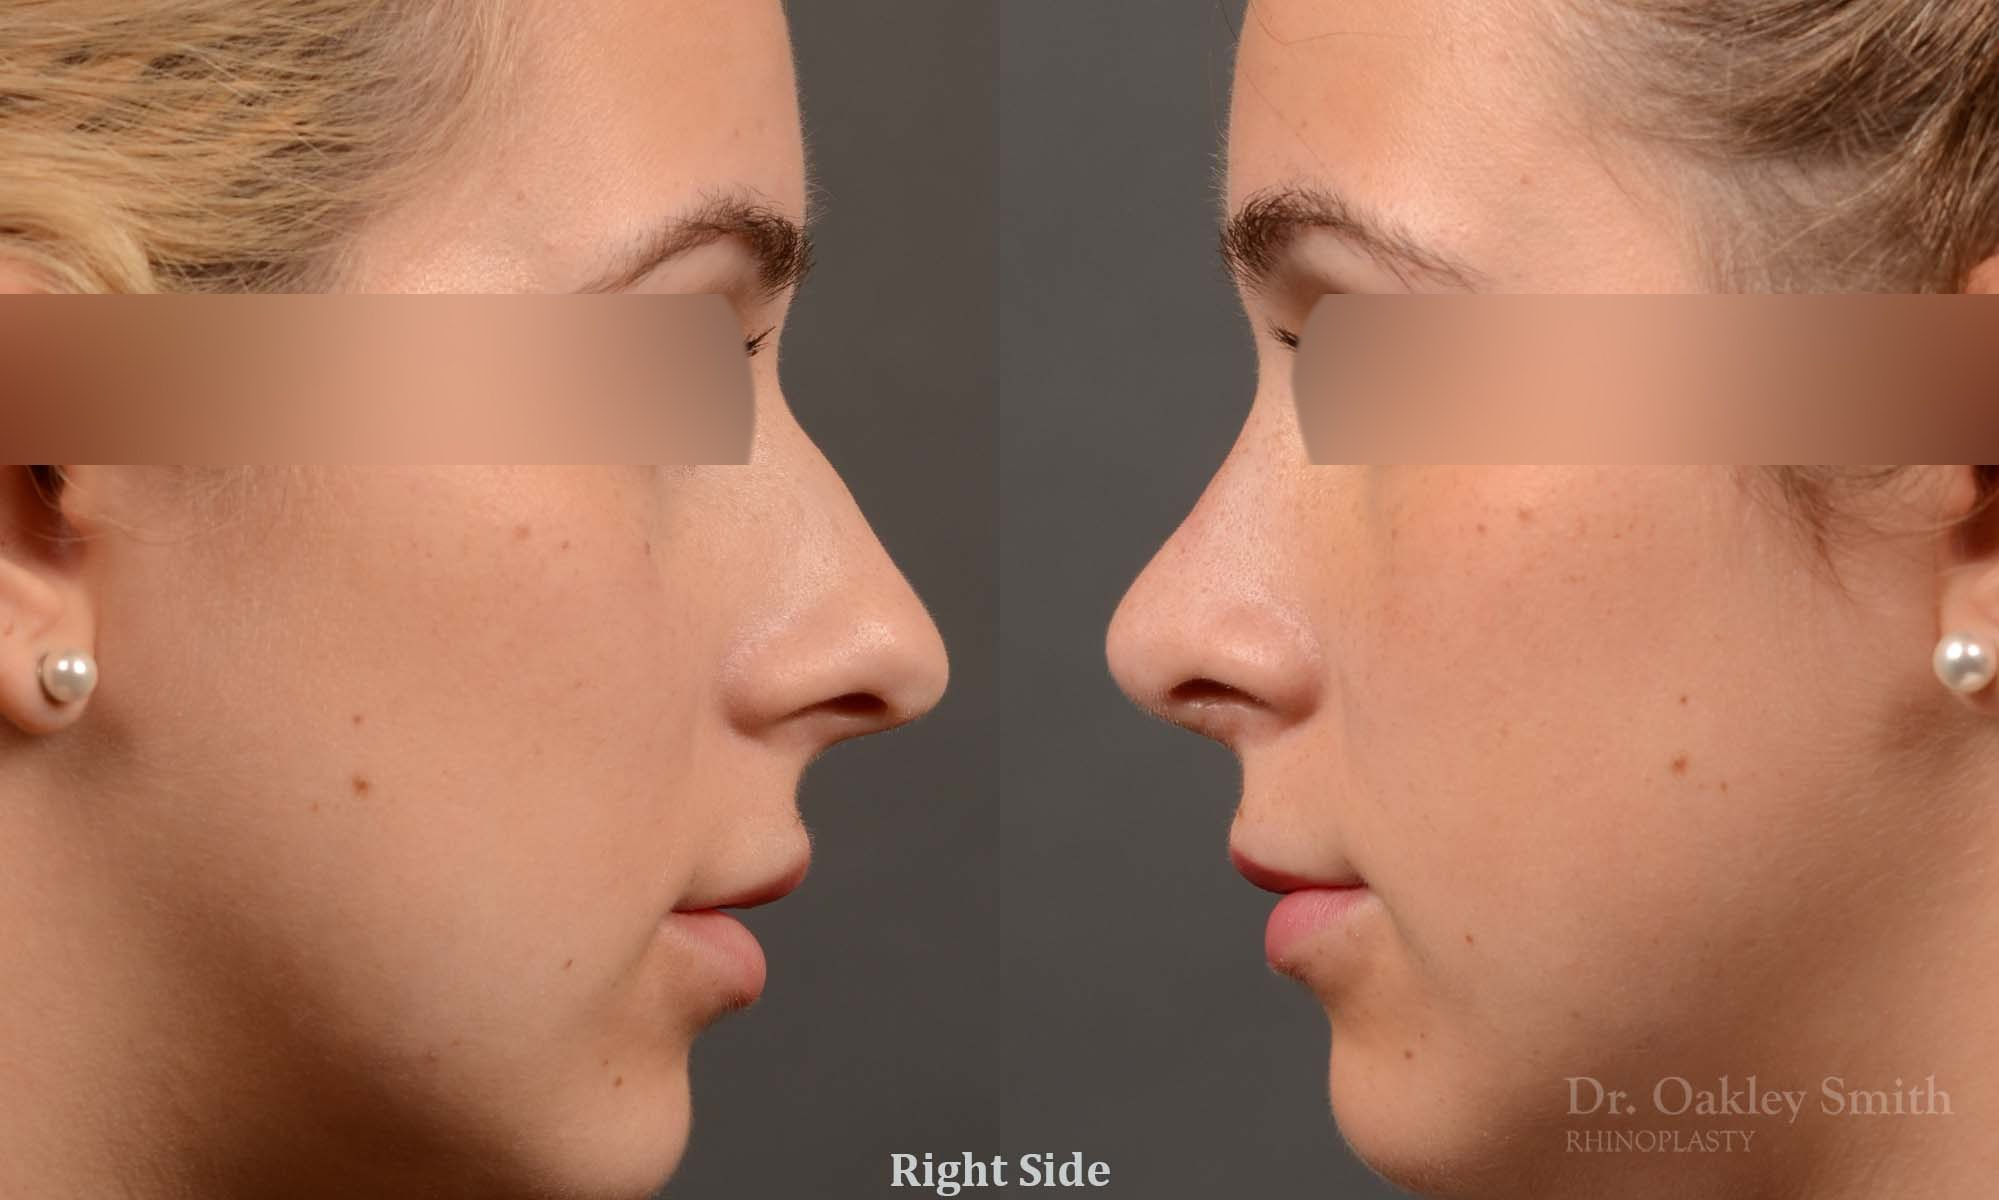 374 rhinoplasty, this woman had revision rhinoplasty to reduce the overall size of her nose.